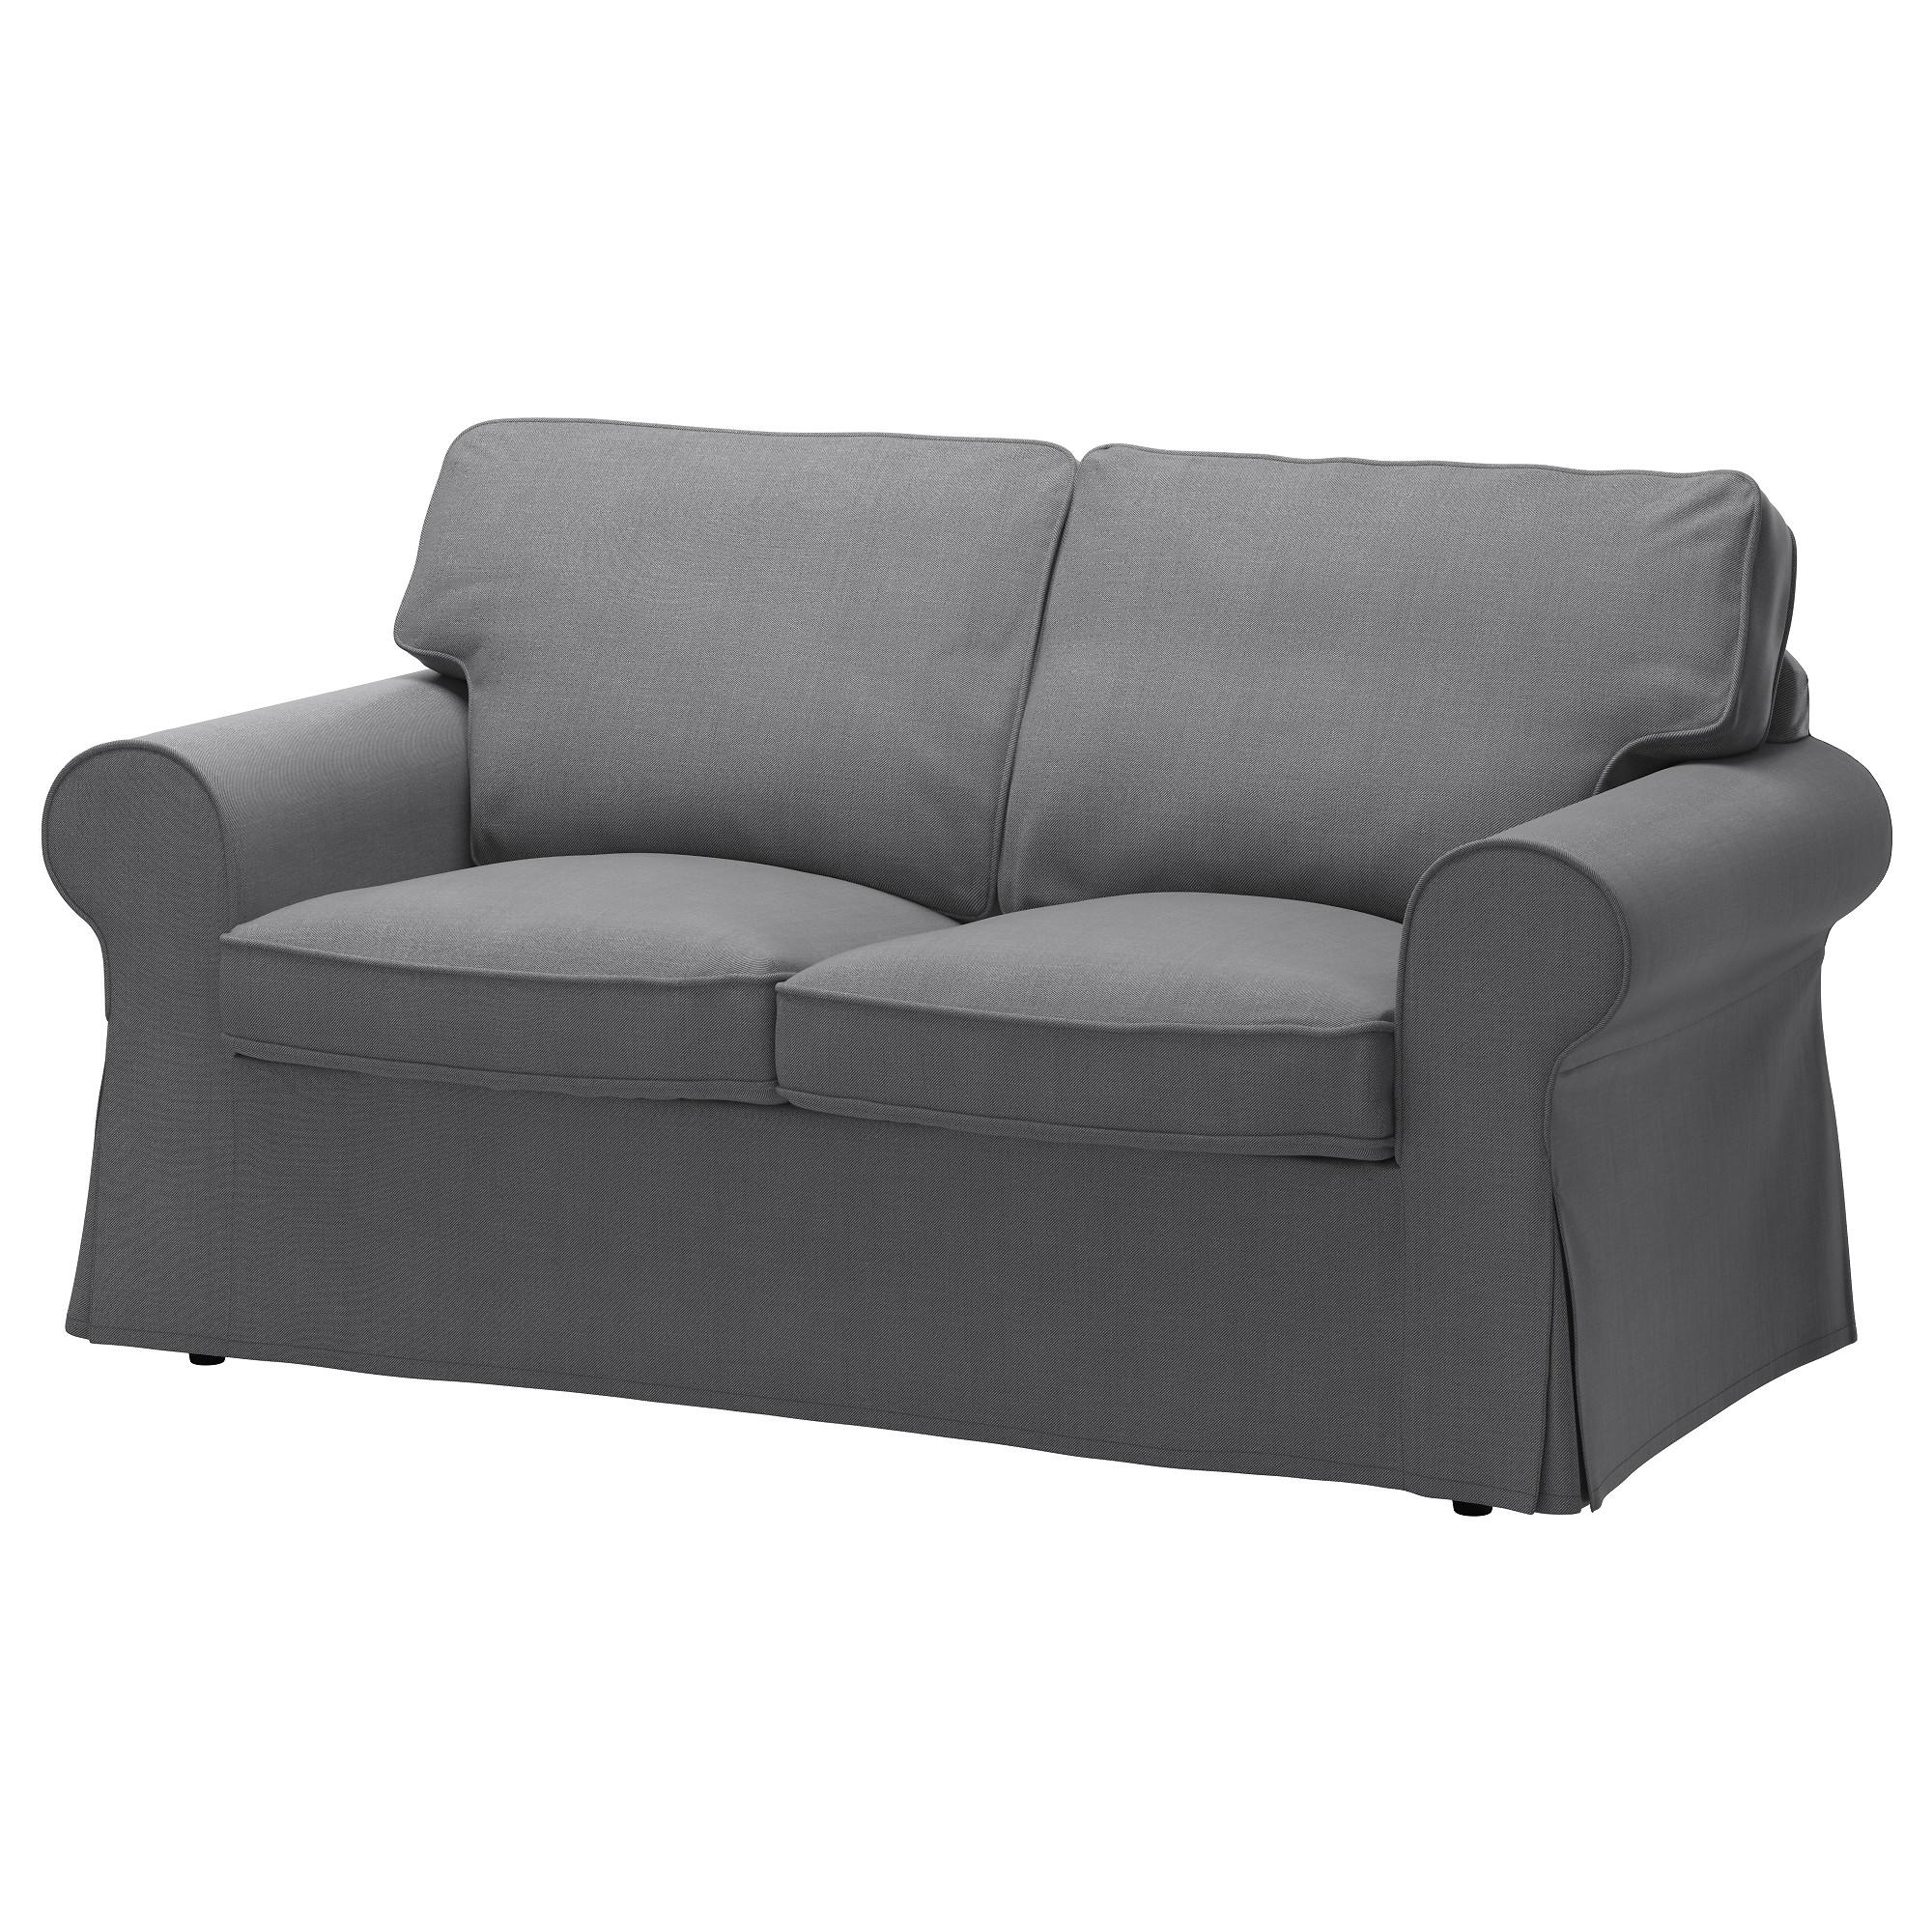 Seater Small Couch 2